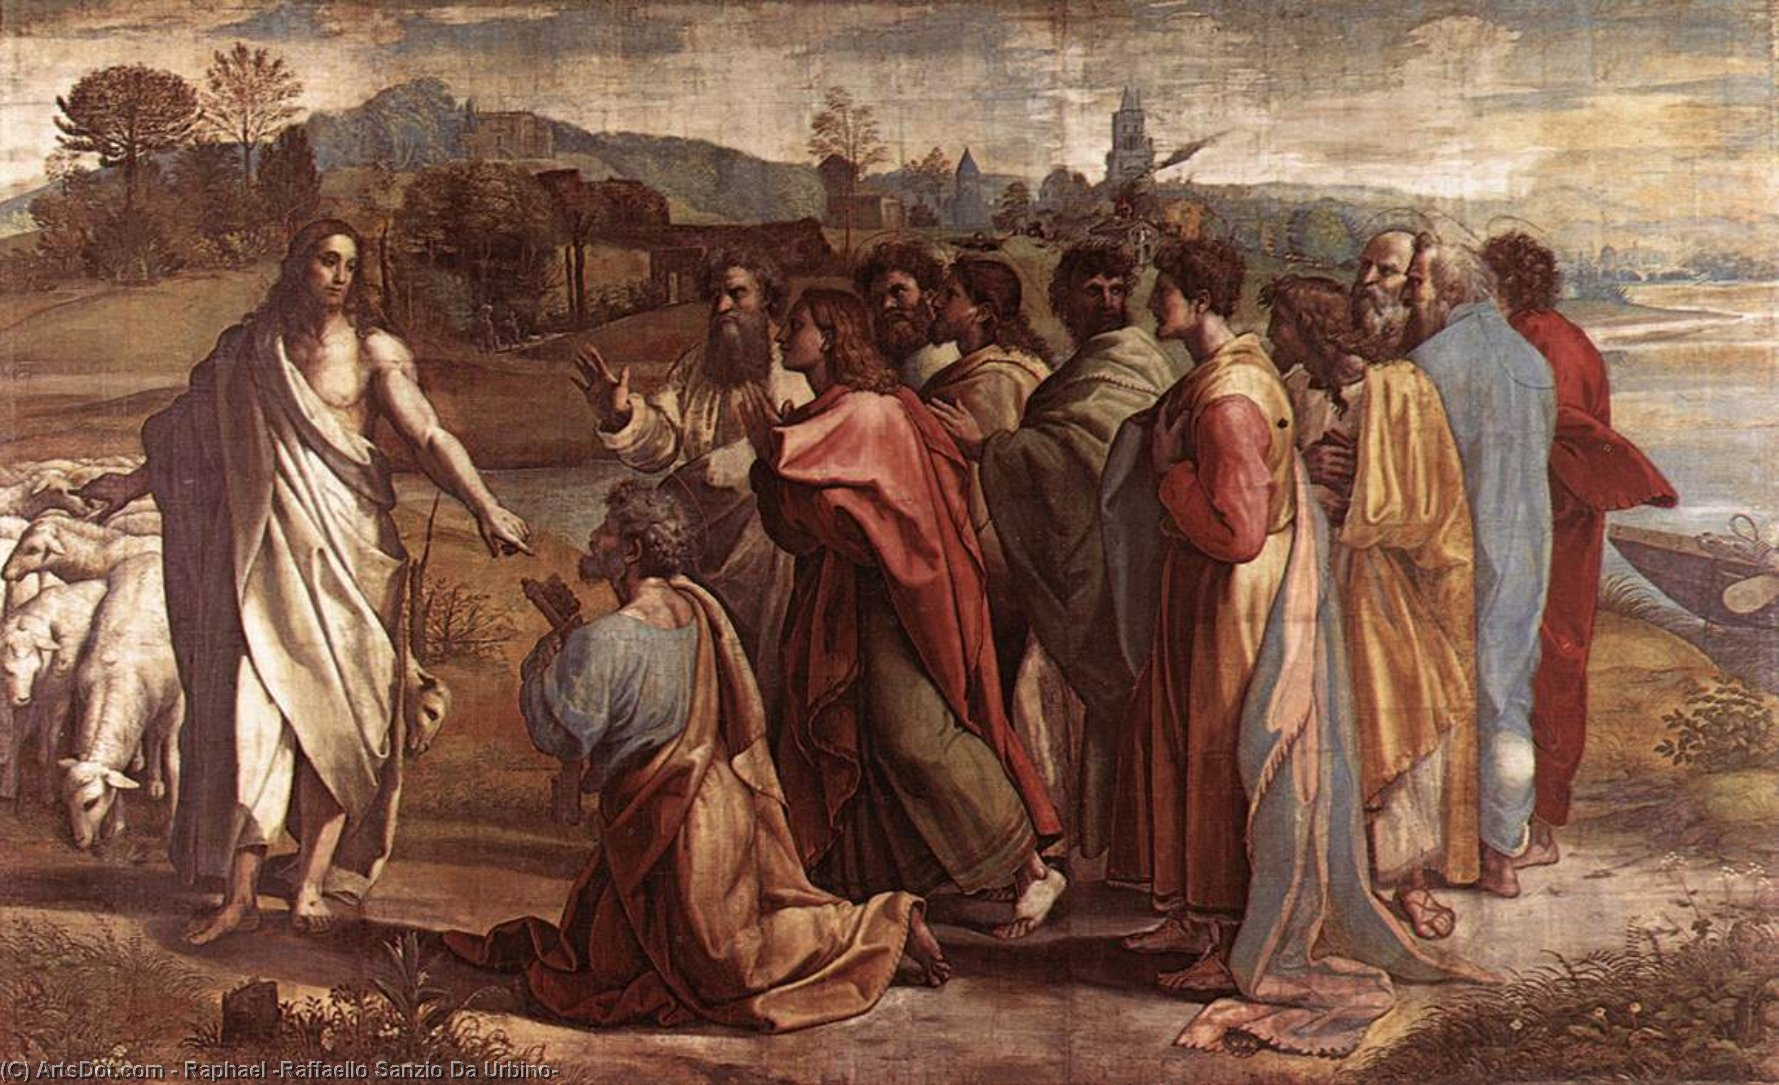 the life and works of raffaello sanzio during the italian high renaissance Raphael, born raffaello sanzio raphael's art epitomized the high renaissance qualities of harmony and ideal beauty his work met with high praise.